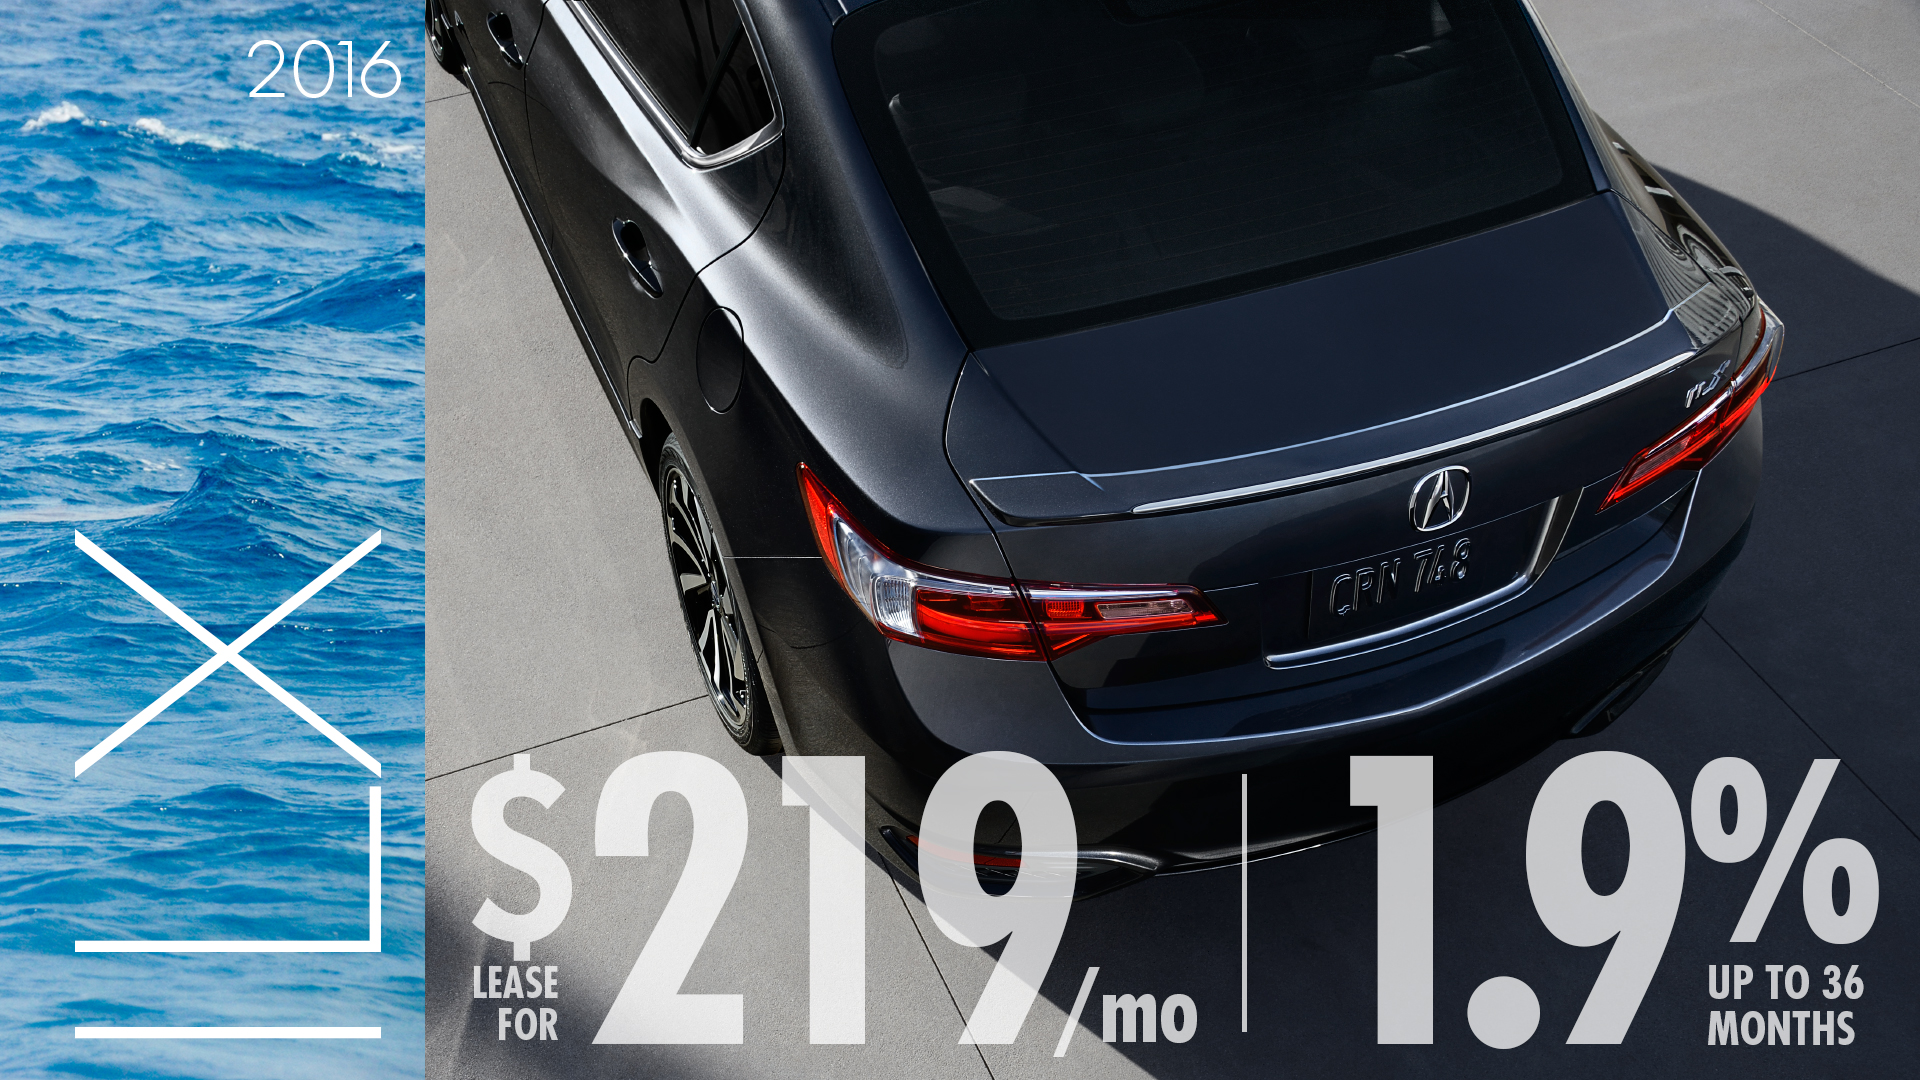 ILX Special Offer